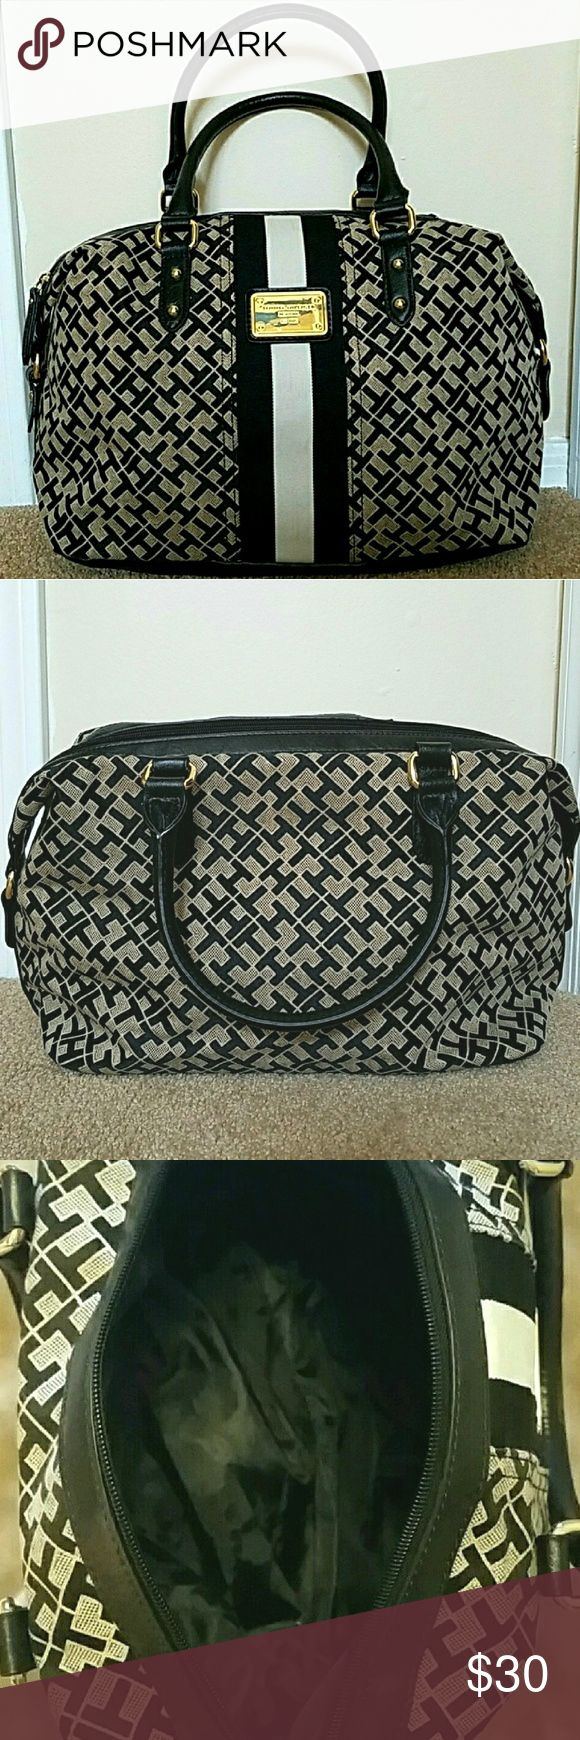 Tommy Hilfiger Handbag Adorable satchel style bag. Neutral colors compliment  any outfit! Excellent condition, used once or twice. Tommy Hilfiger Bags